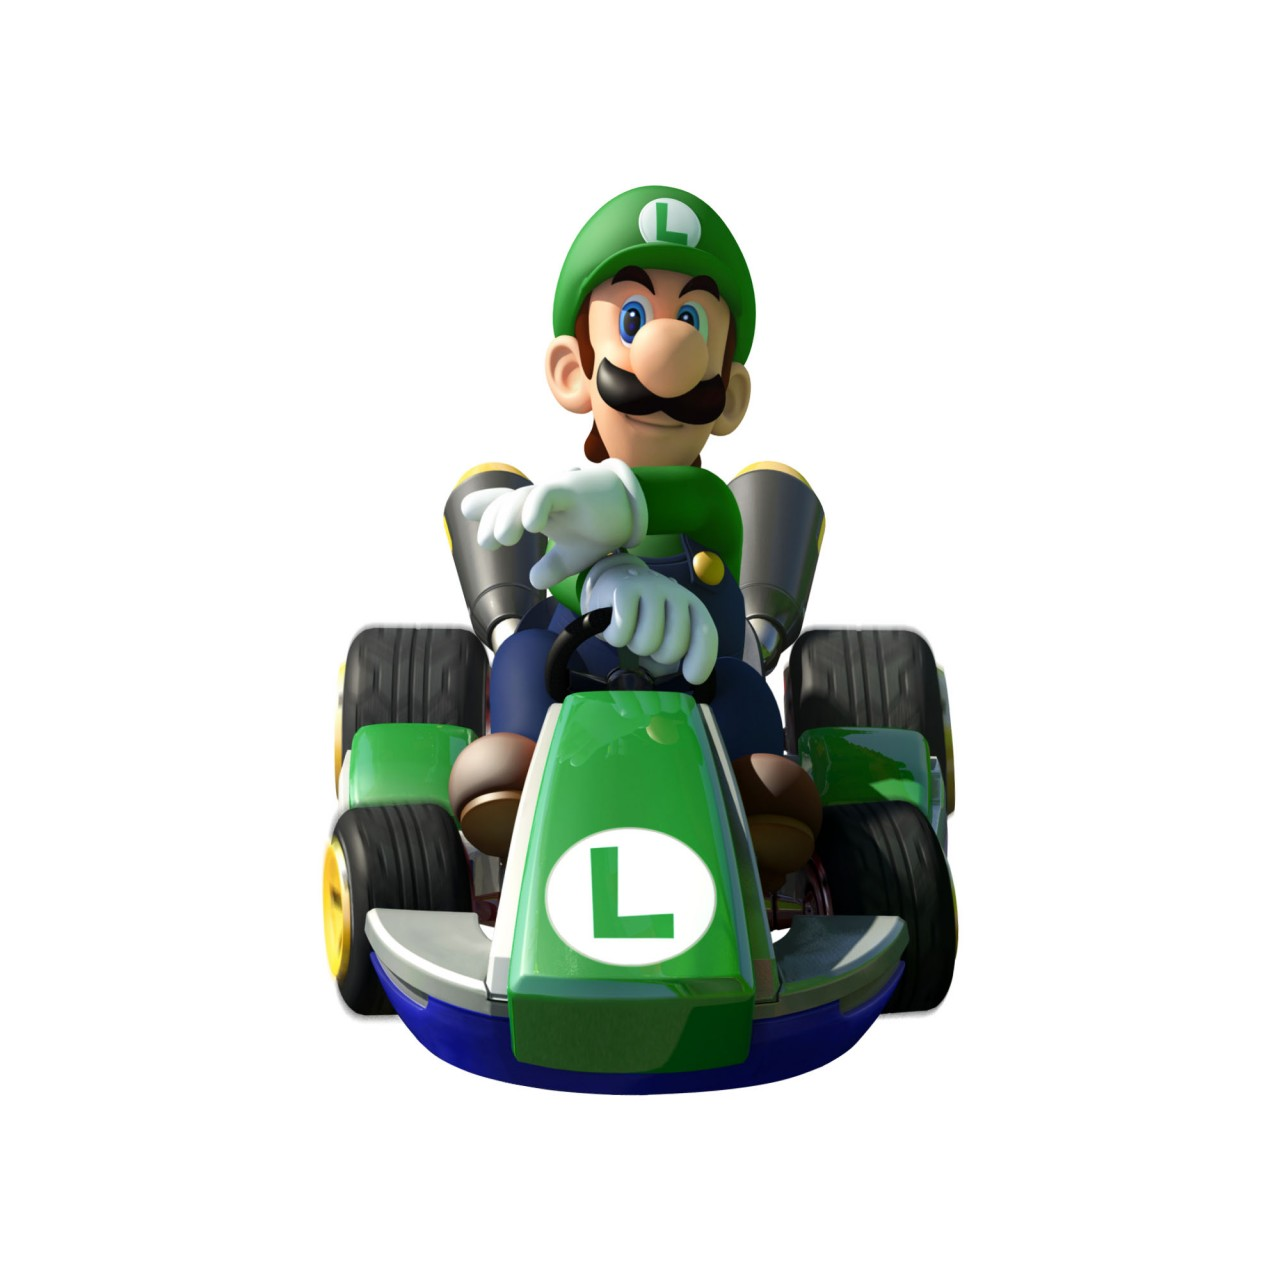 mario kart 8 nos impressions en direct de l 39 e3 2013. Black Bedroom Furniture Sets. Home Design Ideas